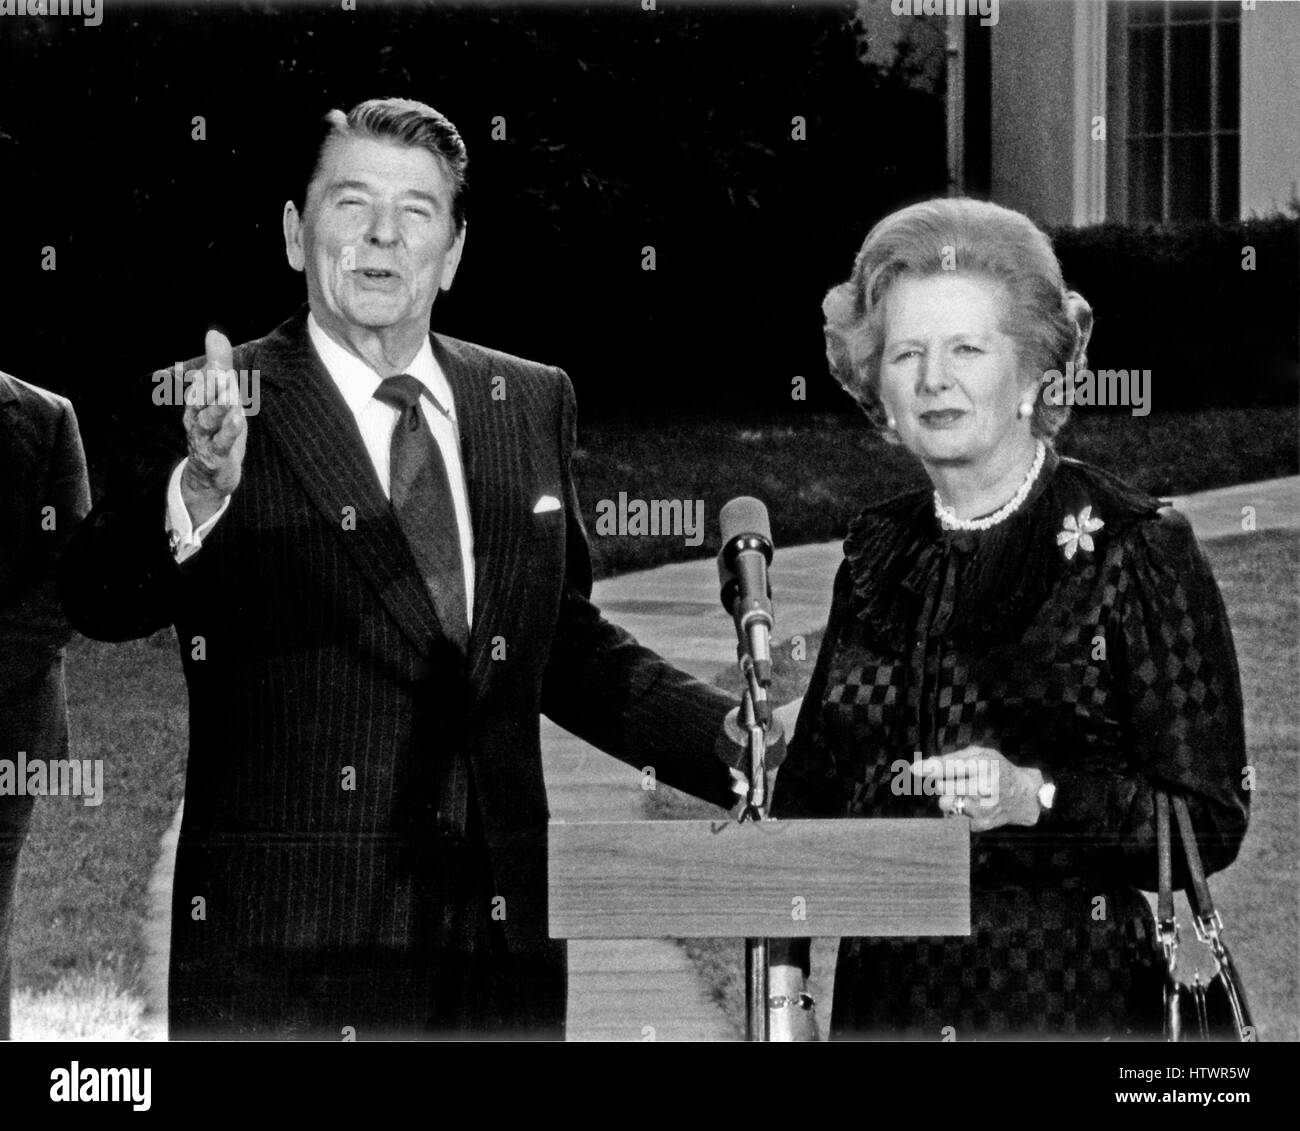 Prime Minister Margaret Thatcher of the United Kingdom, right, is shown with United States President Ronald Reagan - Stock Image